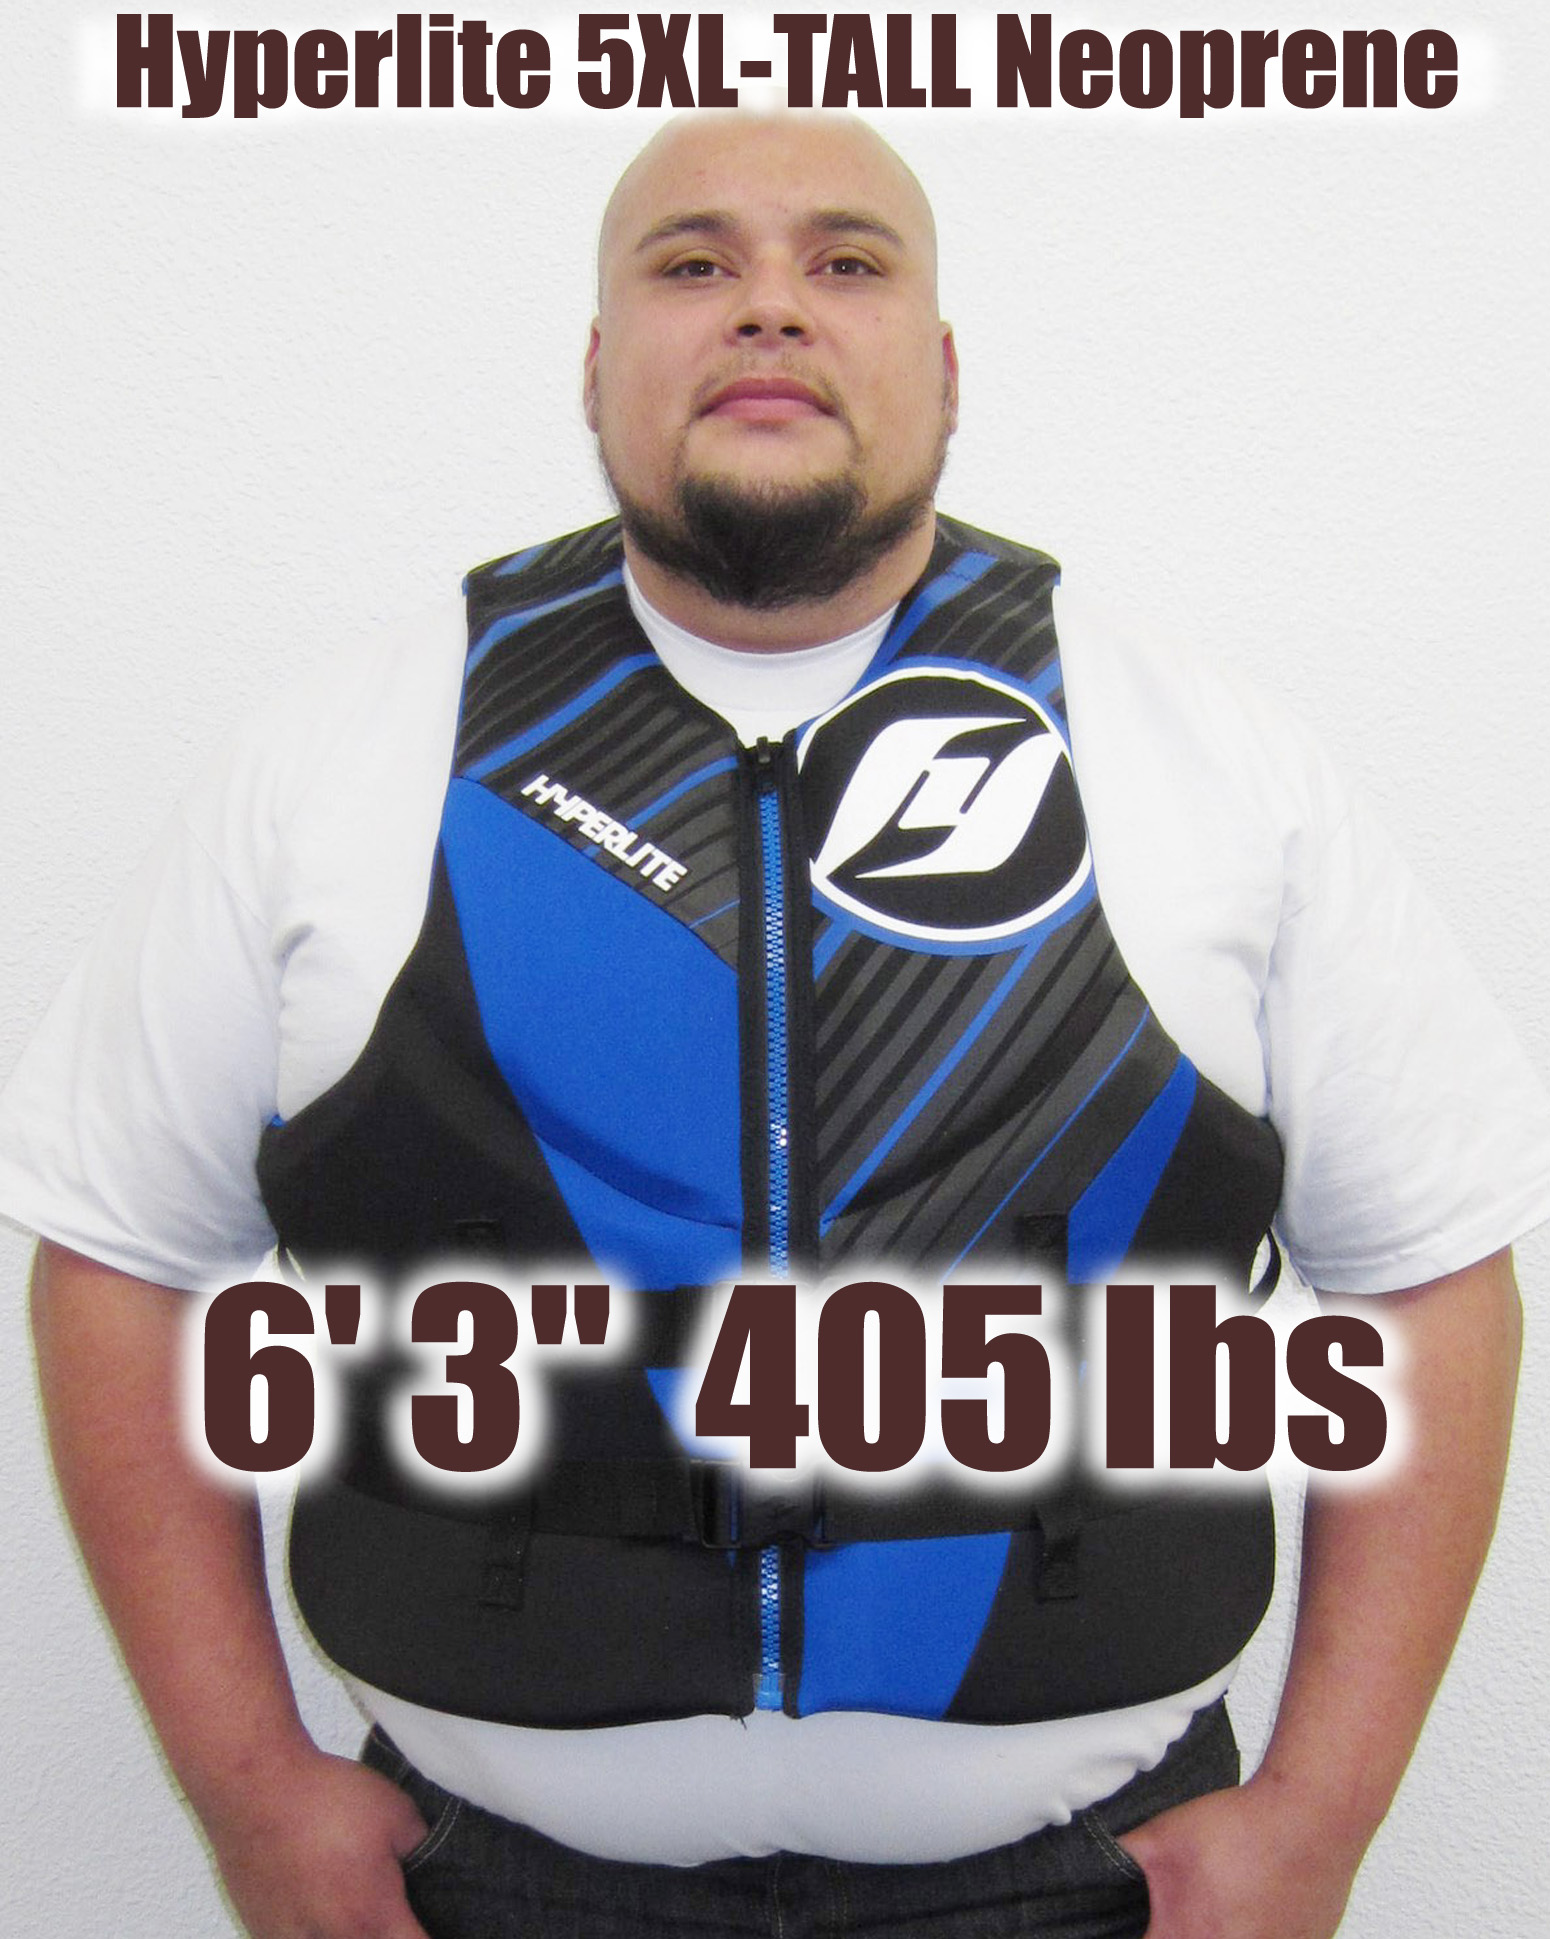 Hyperlite Indy TALL Neoprene Life Vest up to size 5XL TALL